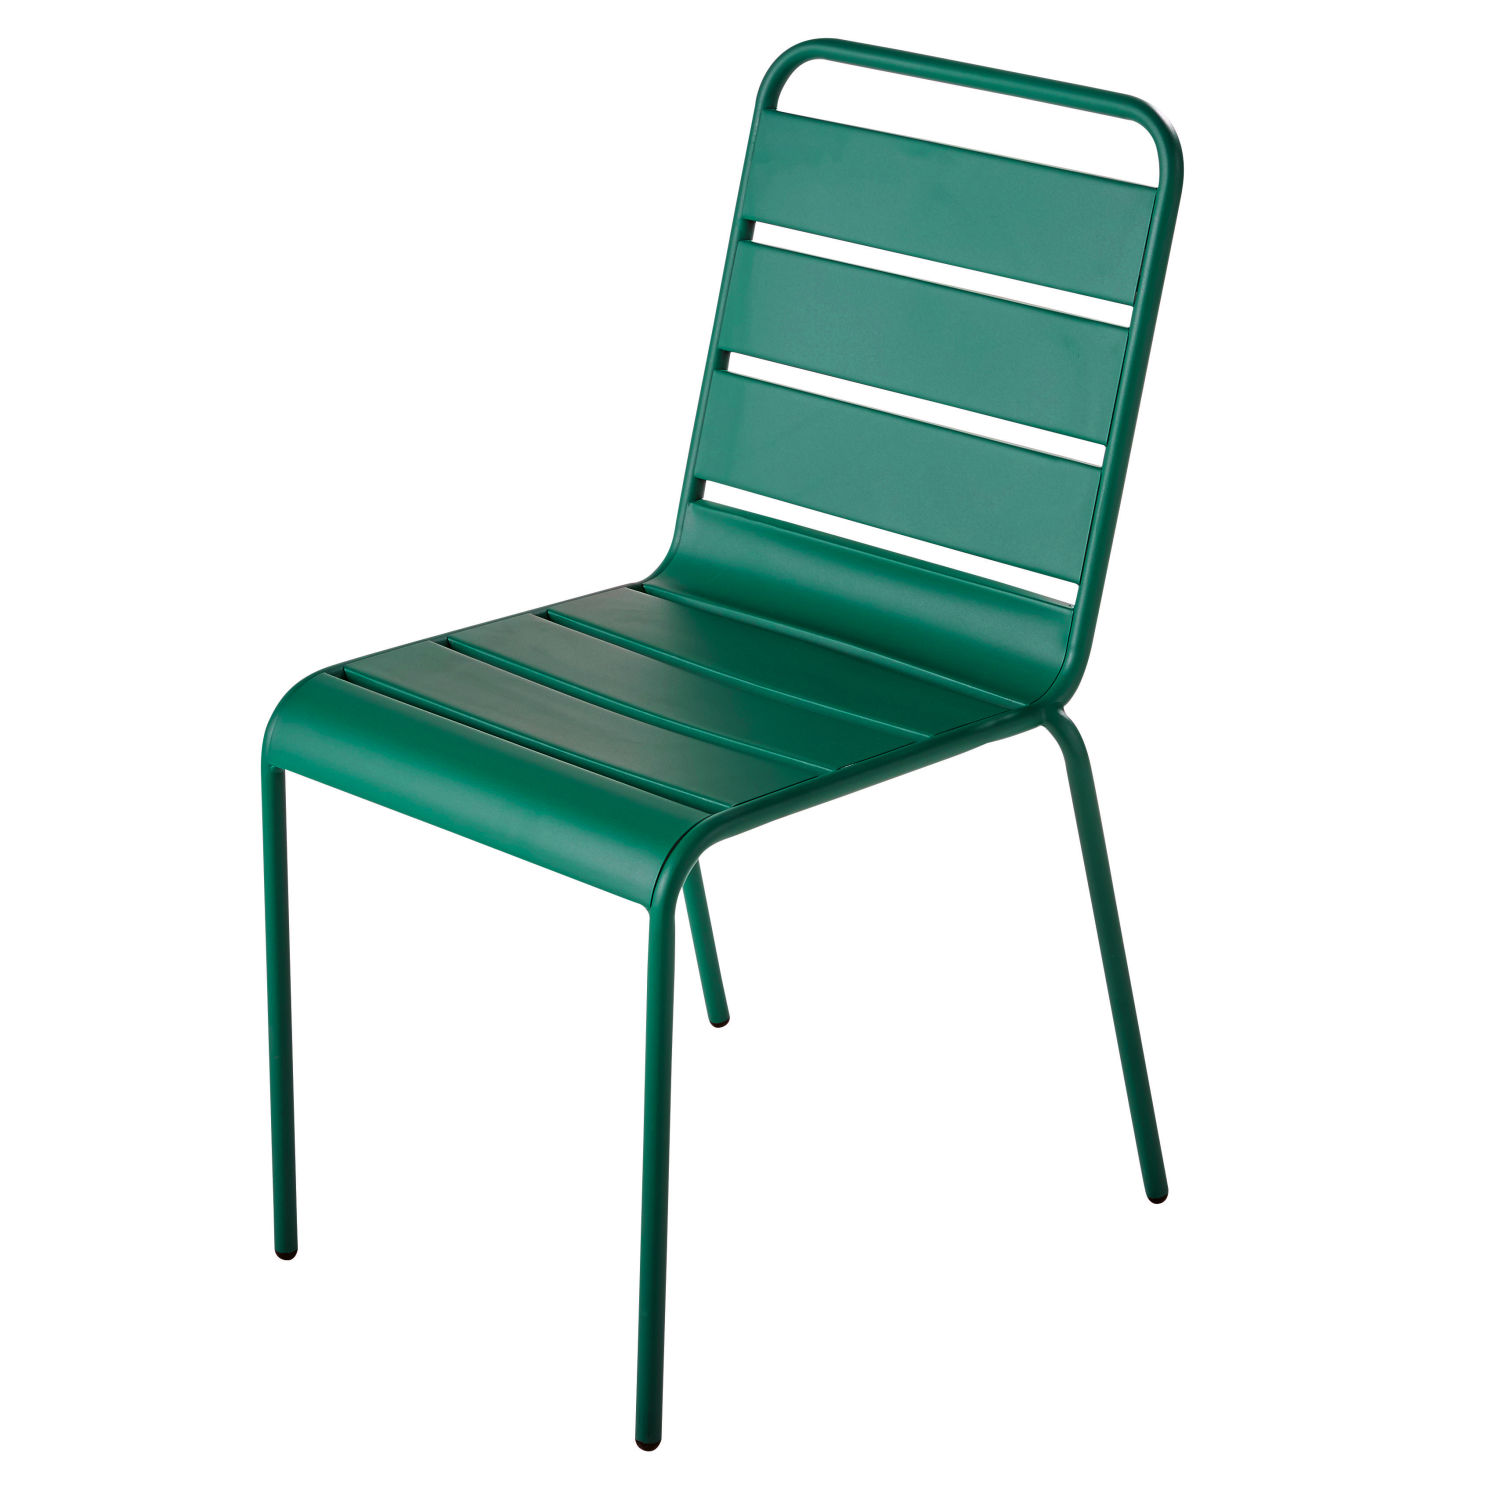 chaise de jardin en m tal vert maisons du monde. Black Bedroom Furniture Sets. Home Design Ideas